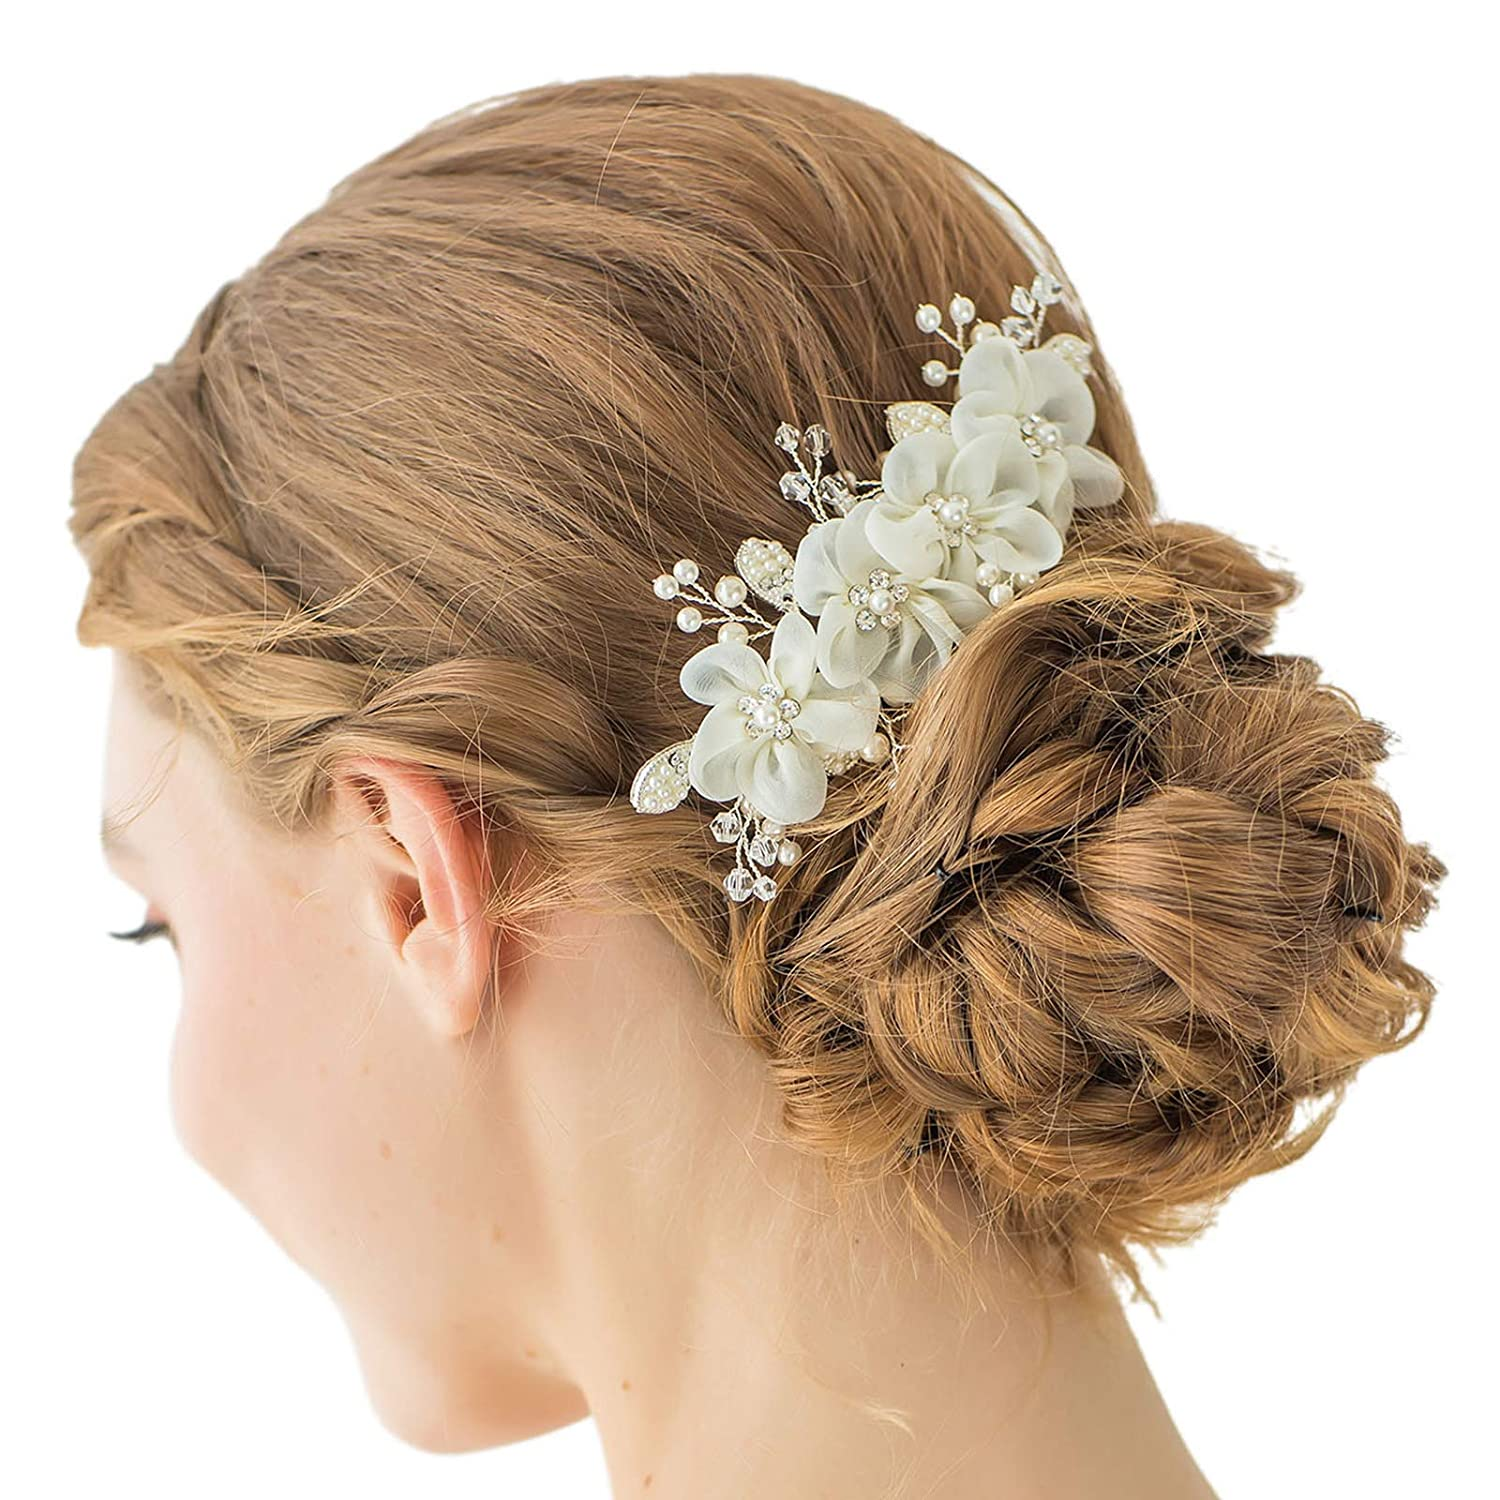 SWEETV Silver Bridal Flower Hair Comb Wedding Rhinestone Side Comb Hair Accessories Hairpiece Head Pieces for Women